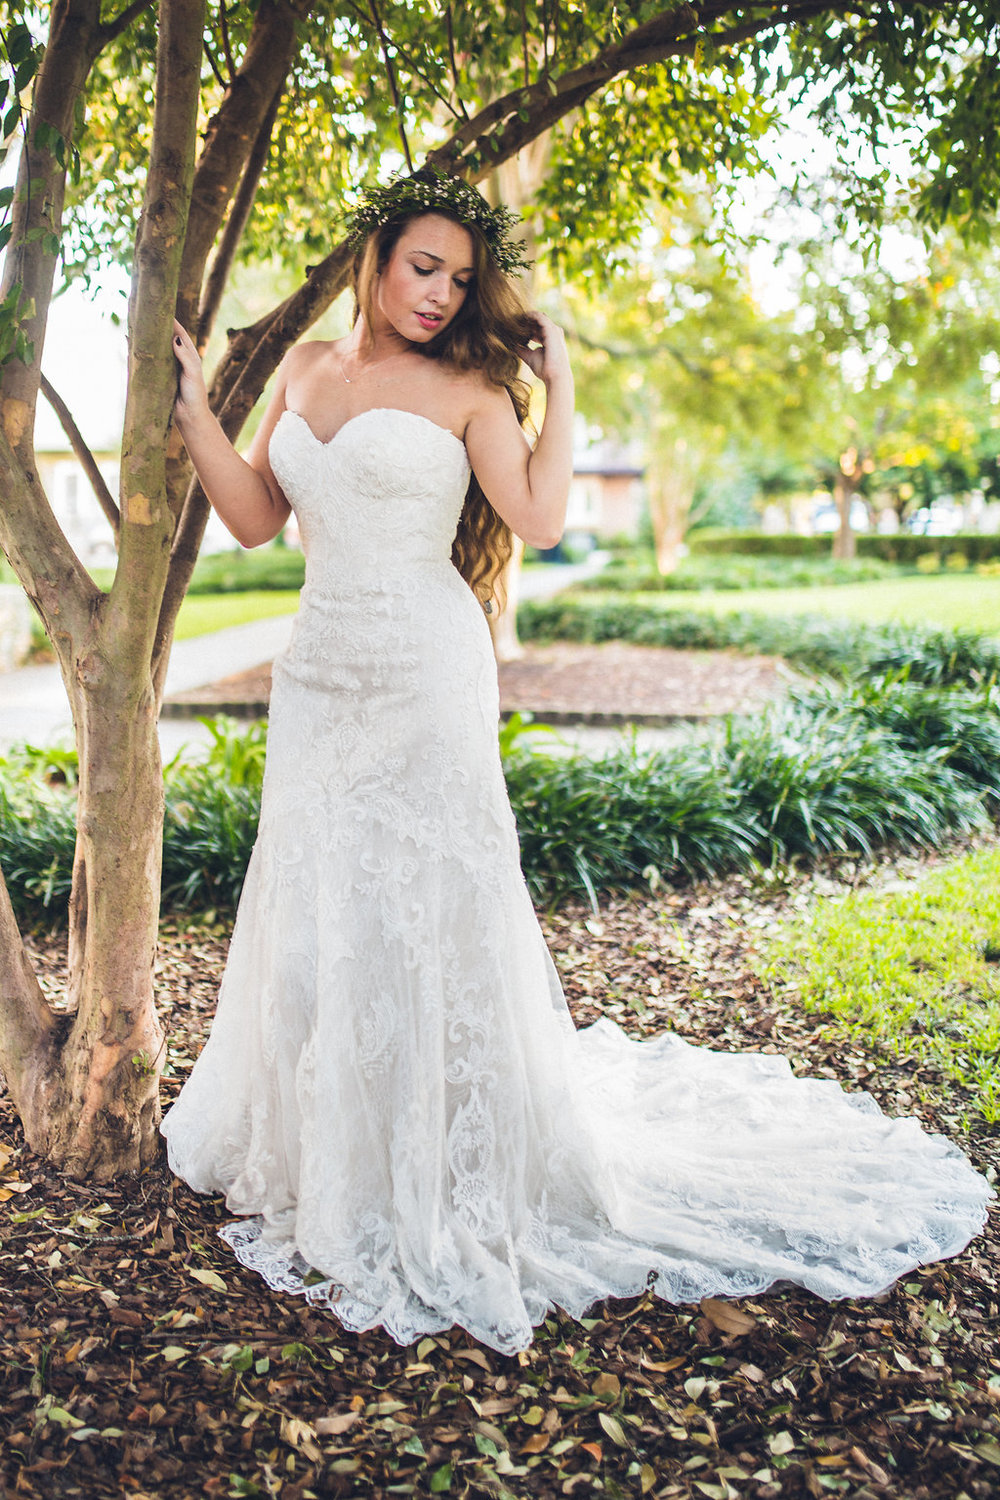 alexis-sweet-photography-ivory-and-beau-bridal-boutique-mirelle--maggie-sottero-rebecca-ingram-lace-mermaid-savannah-wedding-savannah-square-wedding-flower-crown-boho-bride-savannah-wedding-planner-savannah-bridal-boutique-savannah-florist-13.jpg